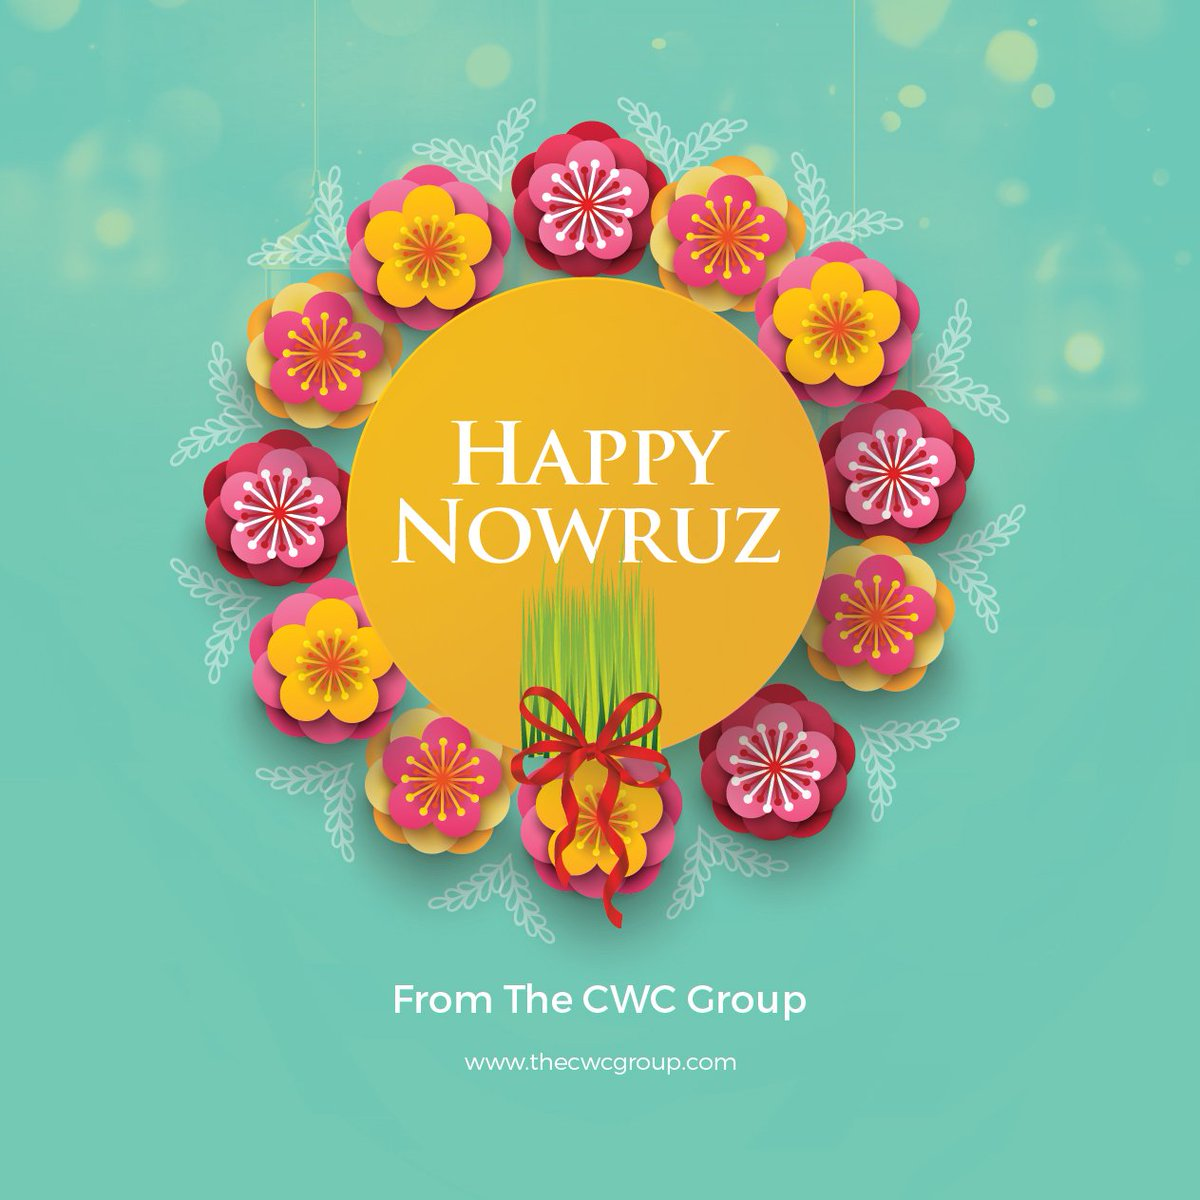 Cwc Group Mena On Twitter Happy Nowruz From The Cwc Group